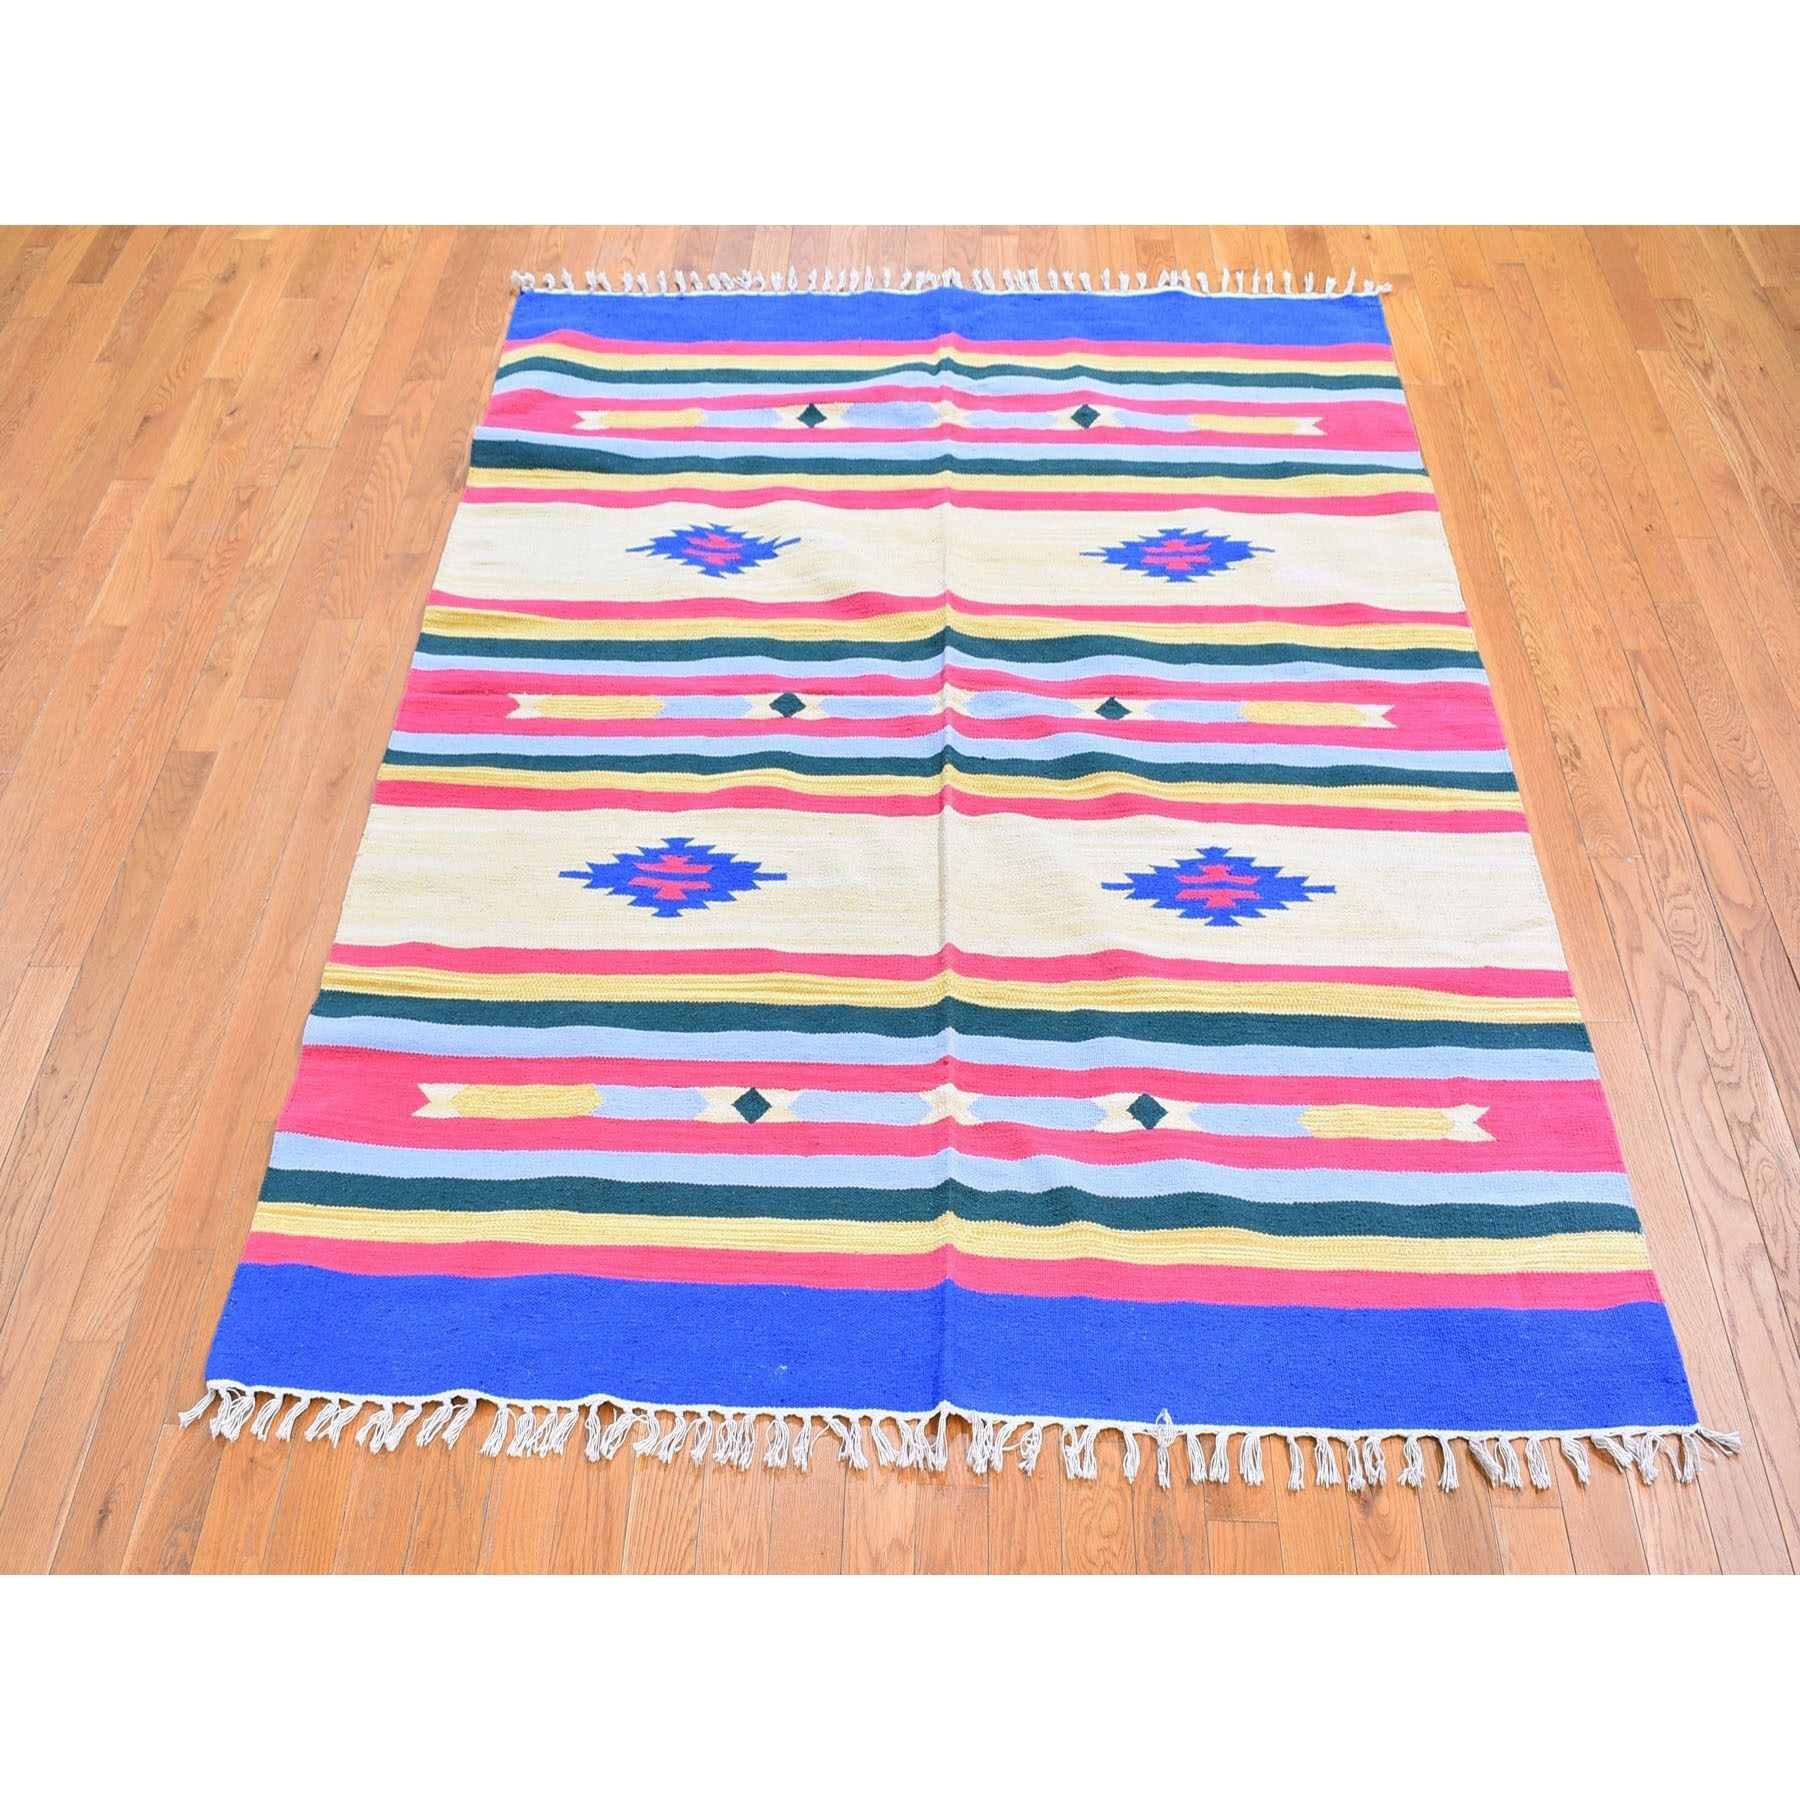 6'x6' Ivory Cotton Durie Flat Weave with Southwestern Design Kilim Hand Woven Square Oriental Rug